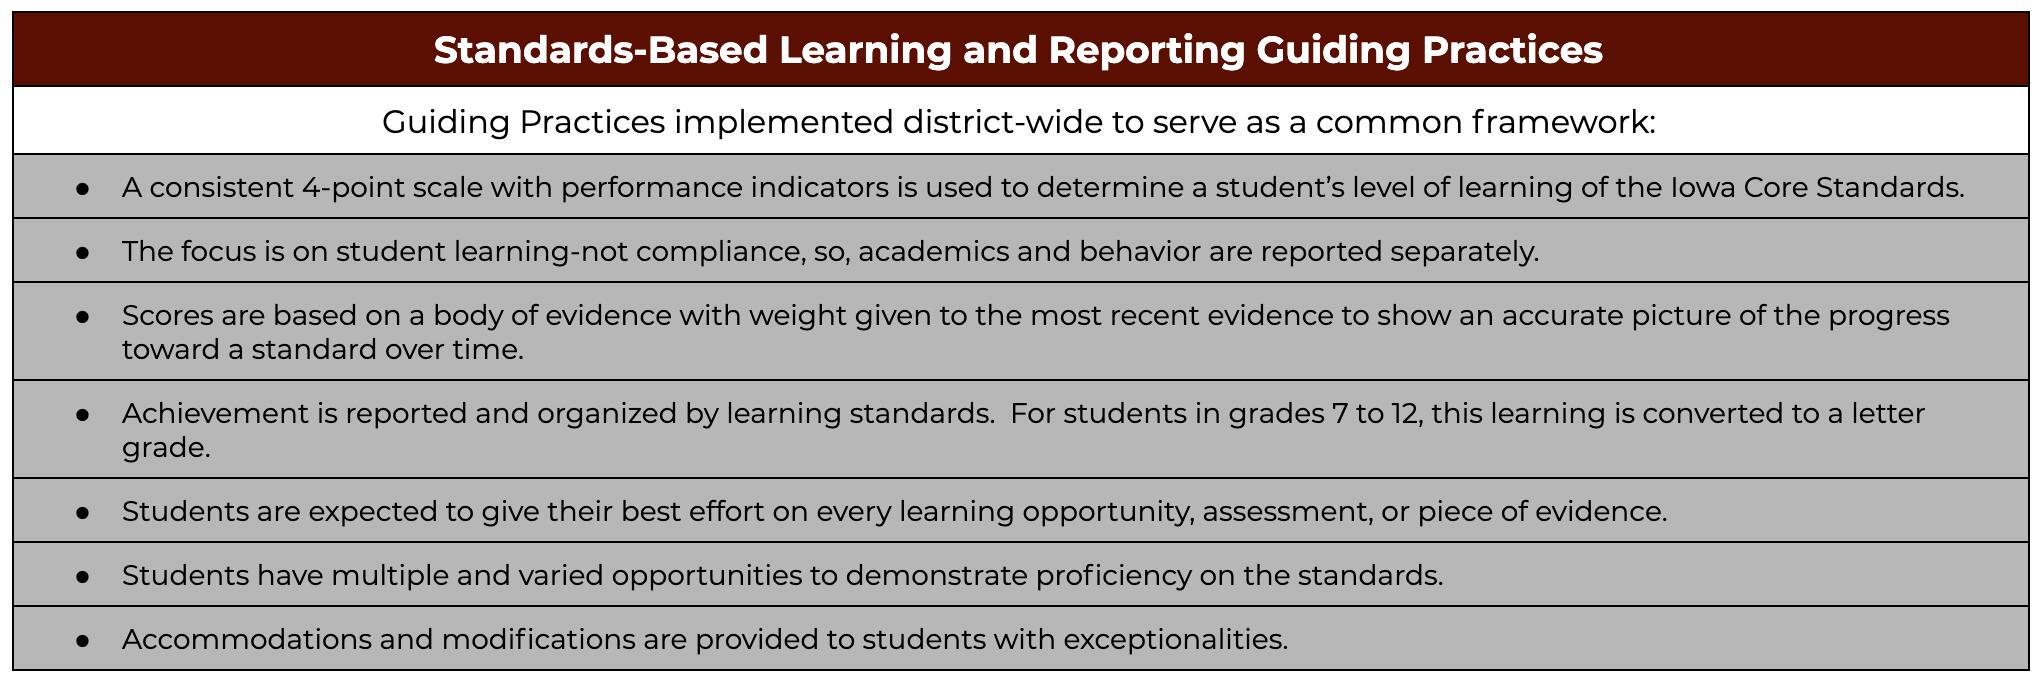 OCSD Standards-Based Learning Guiding Practices